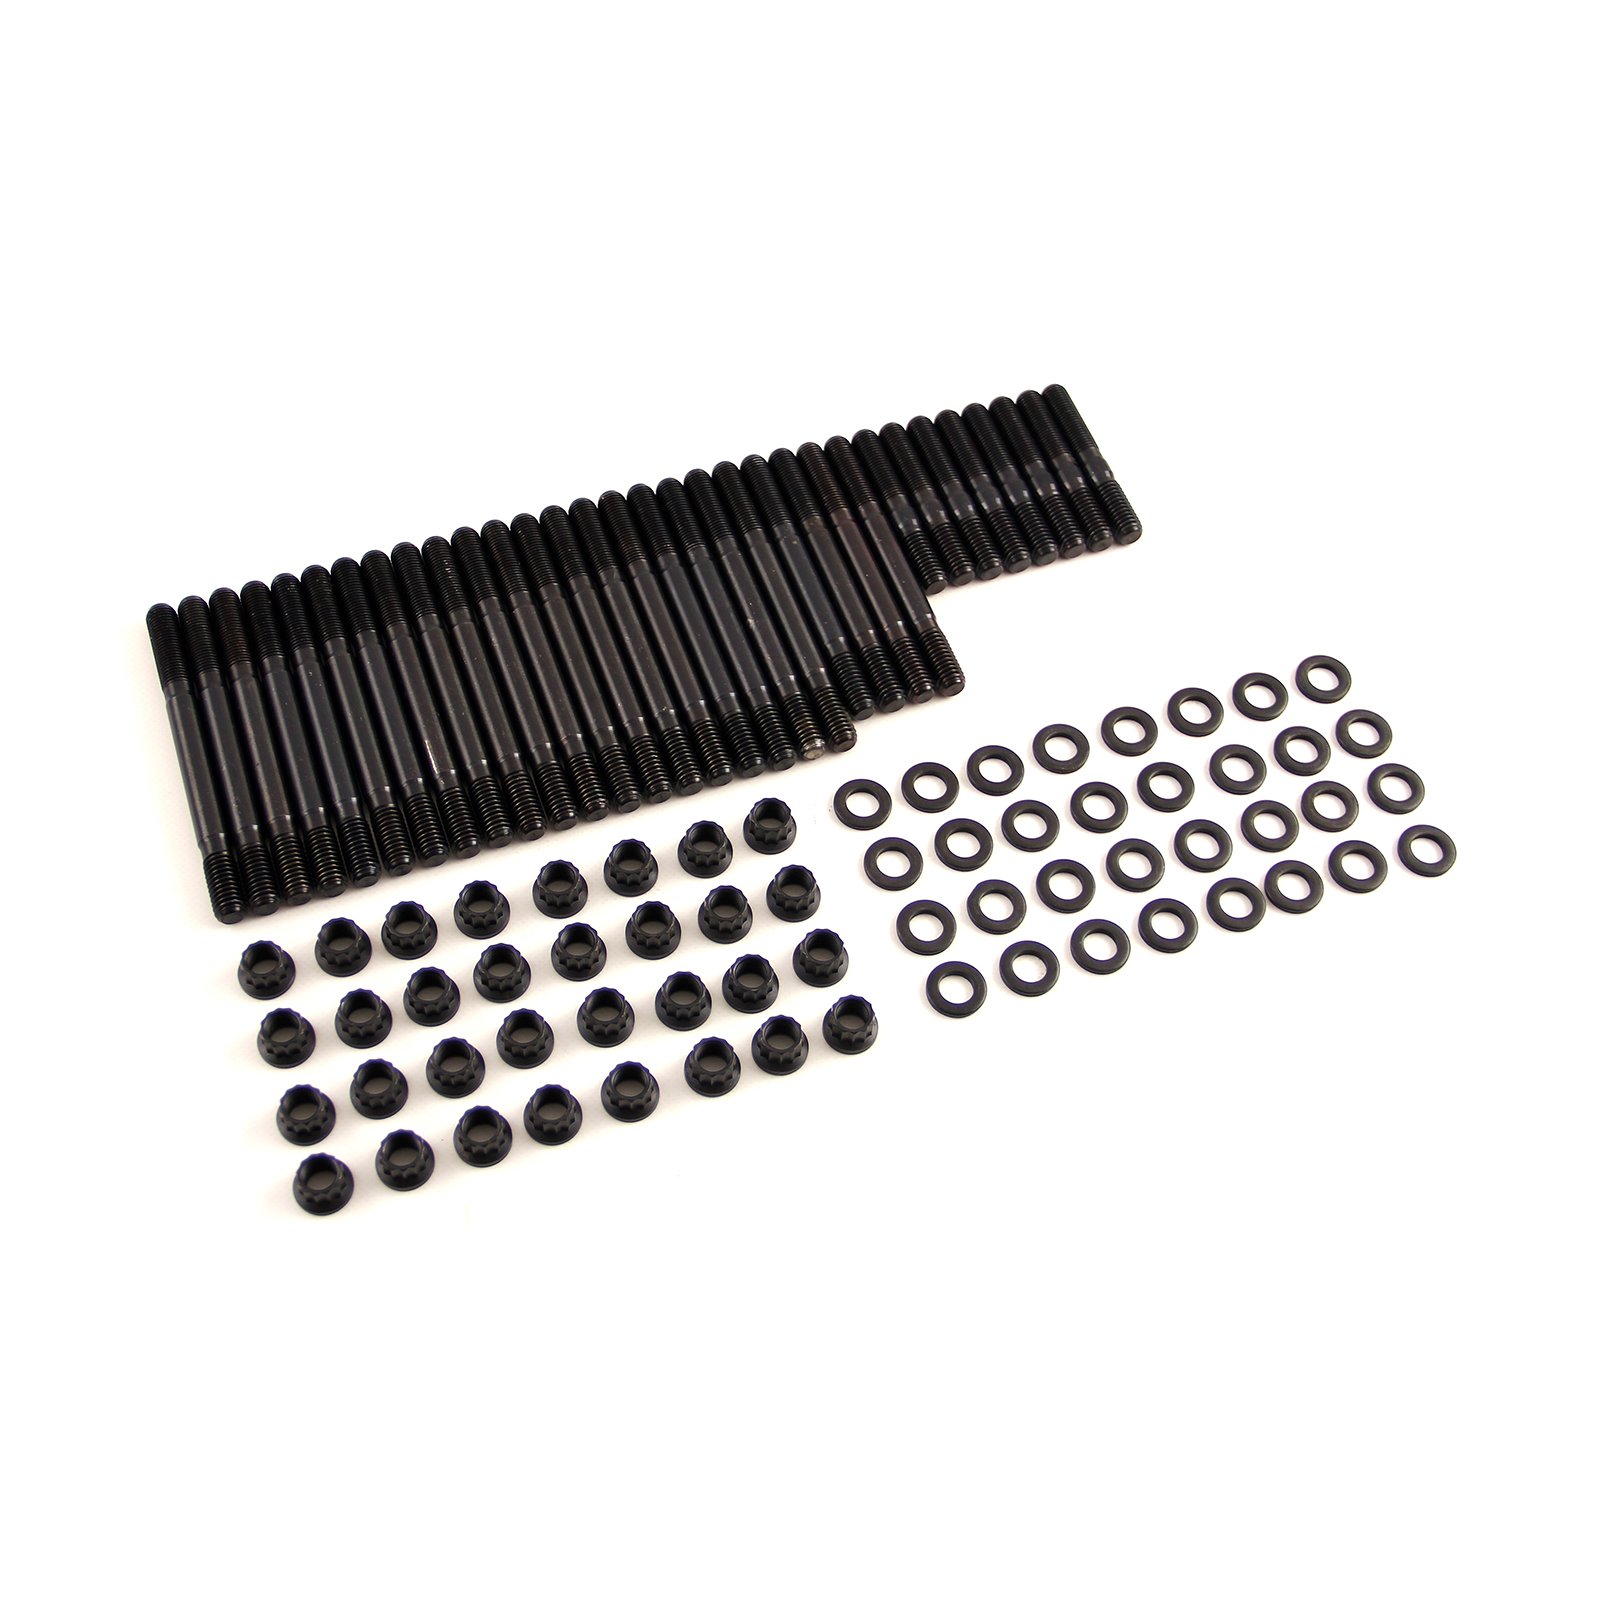 Chevy BBC 454 12 Point Head Stud Kit